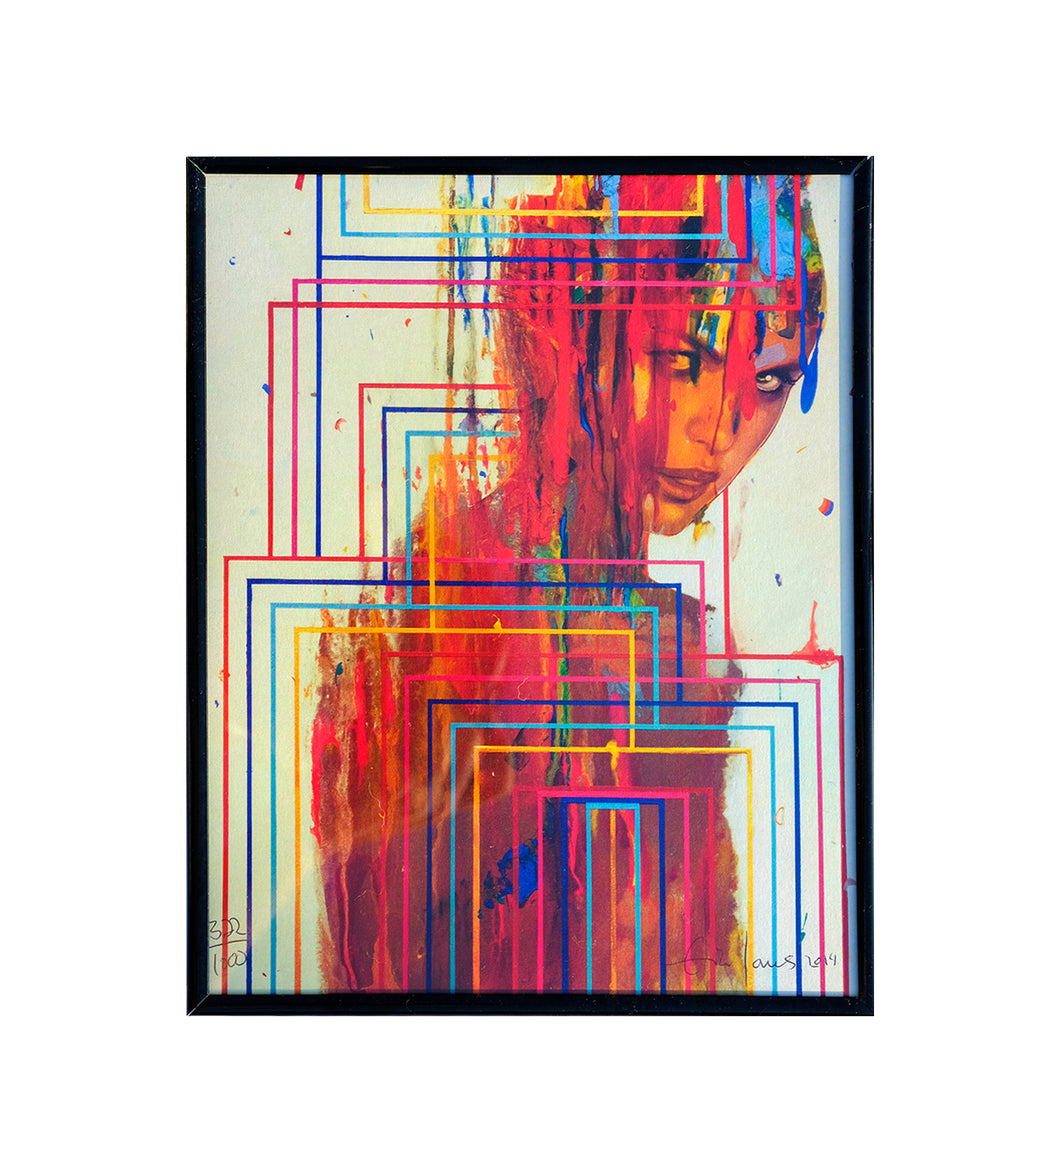 Erik Jones - IM-10 - Limited Edition Print